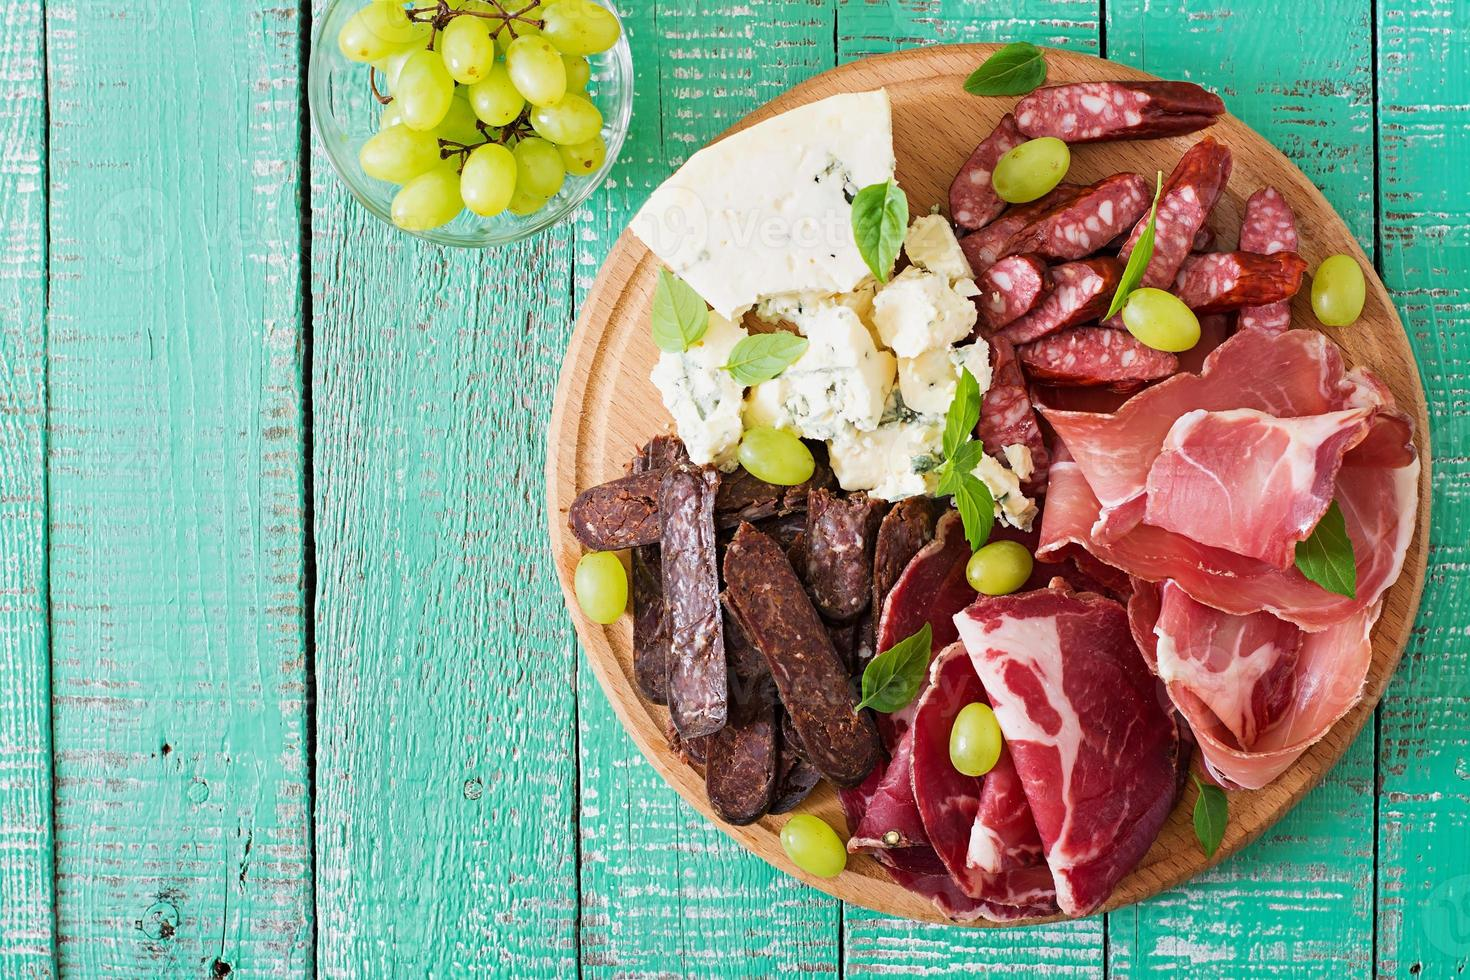 Antipasto catering platter with bacon, jerky, sausage, blue cheese photo